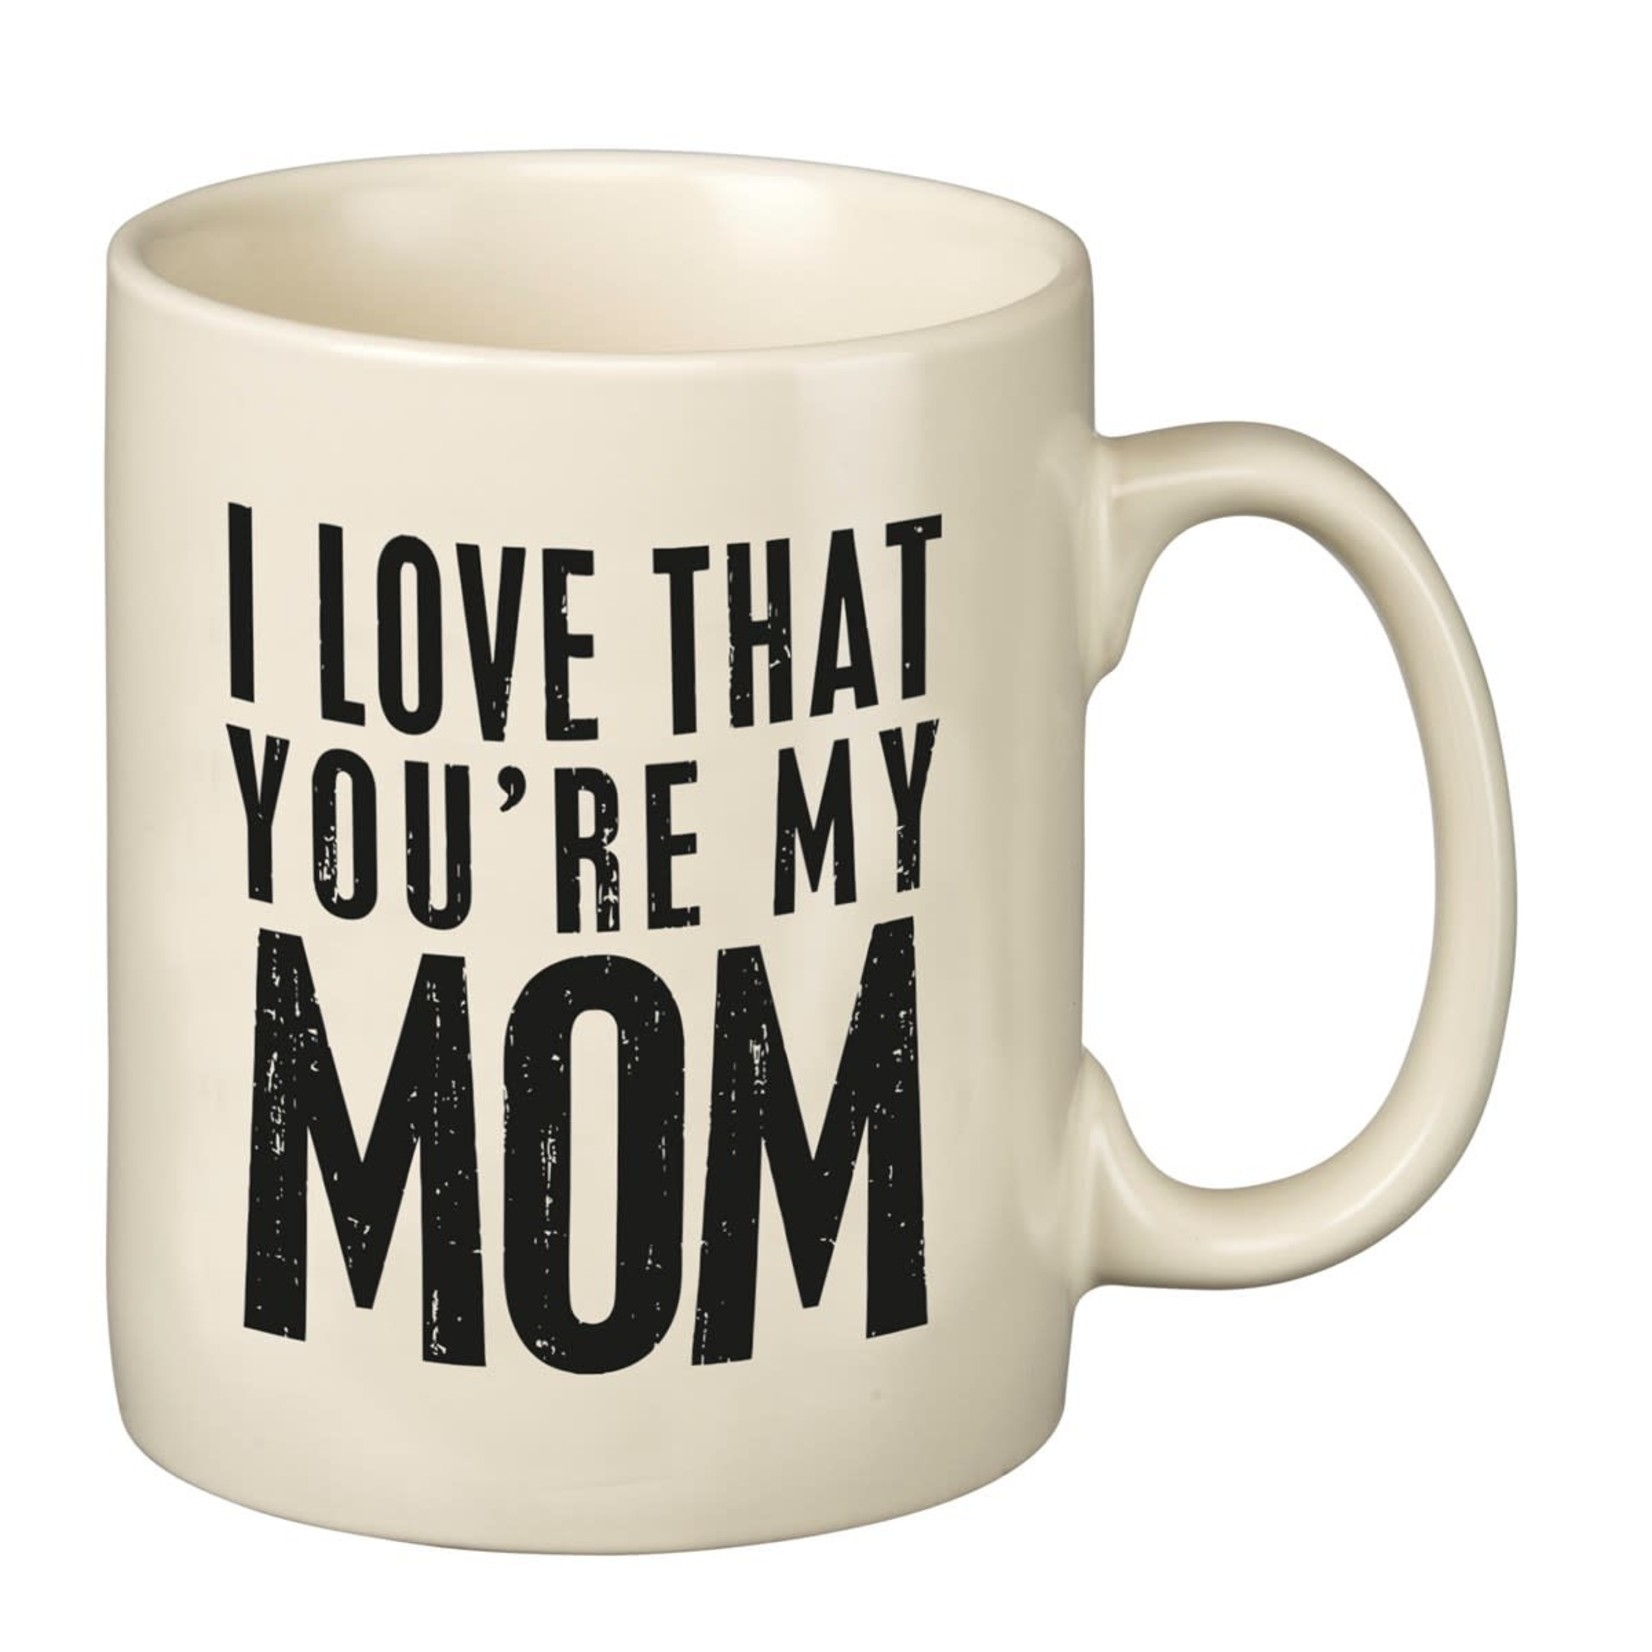 Primitives by Kathy Mug: I Love That You're my Mom